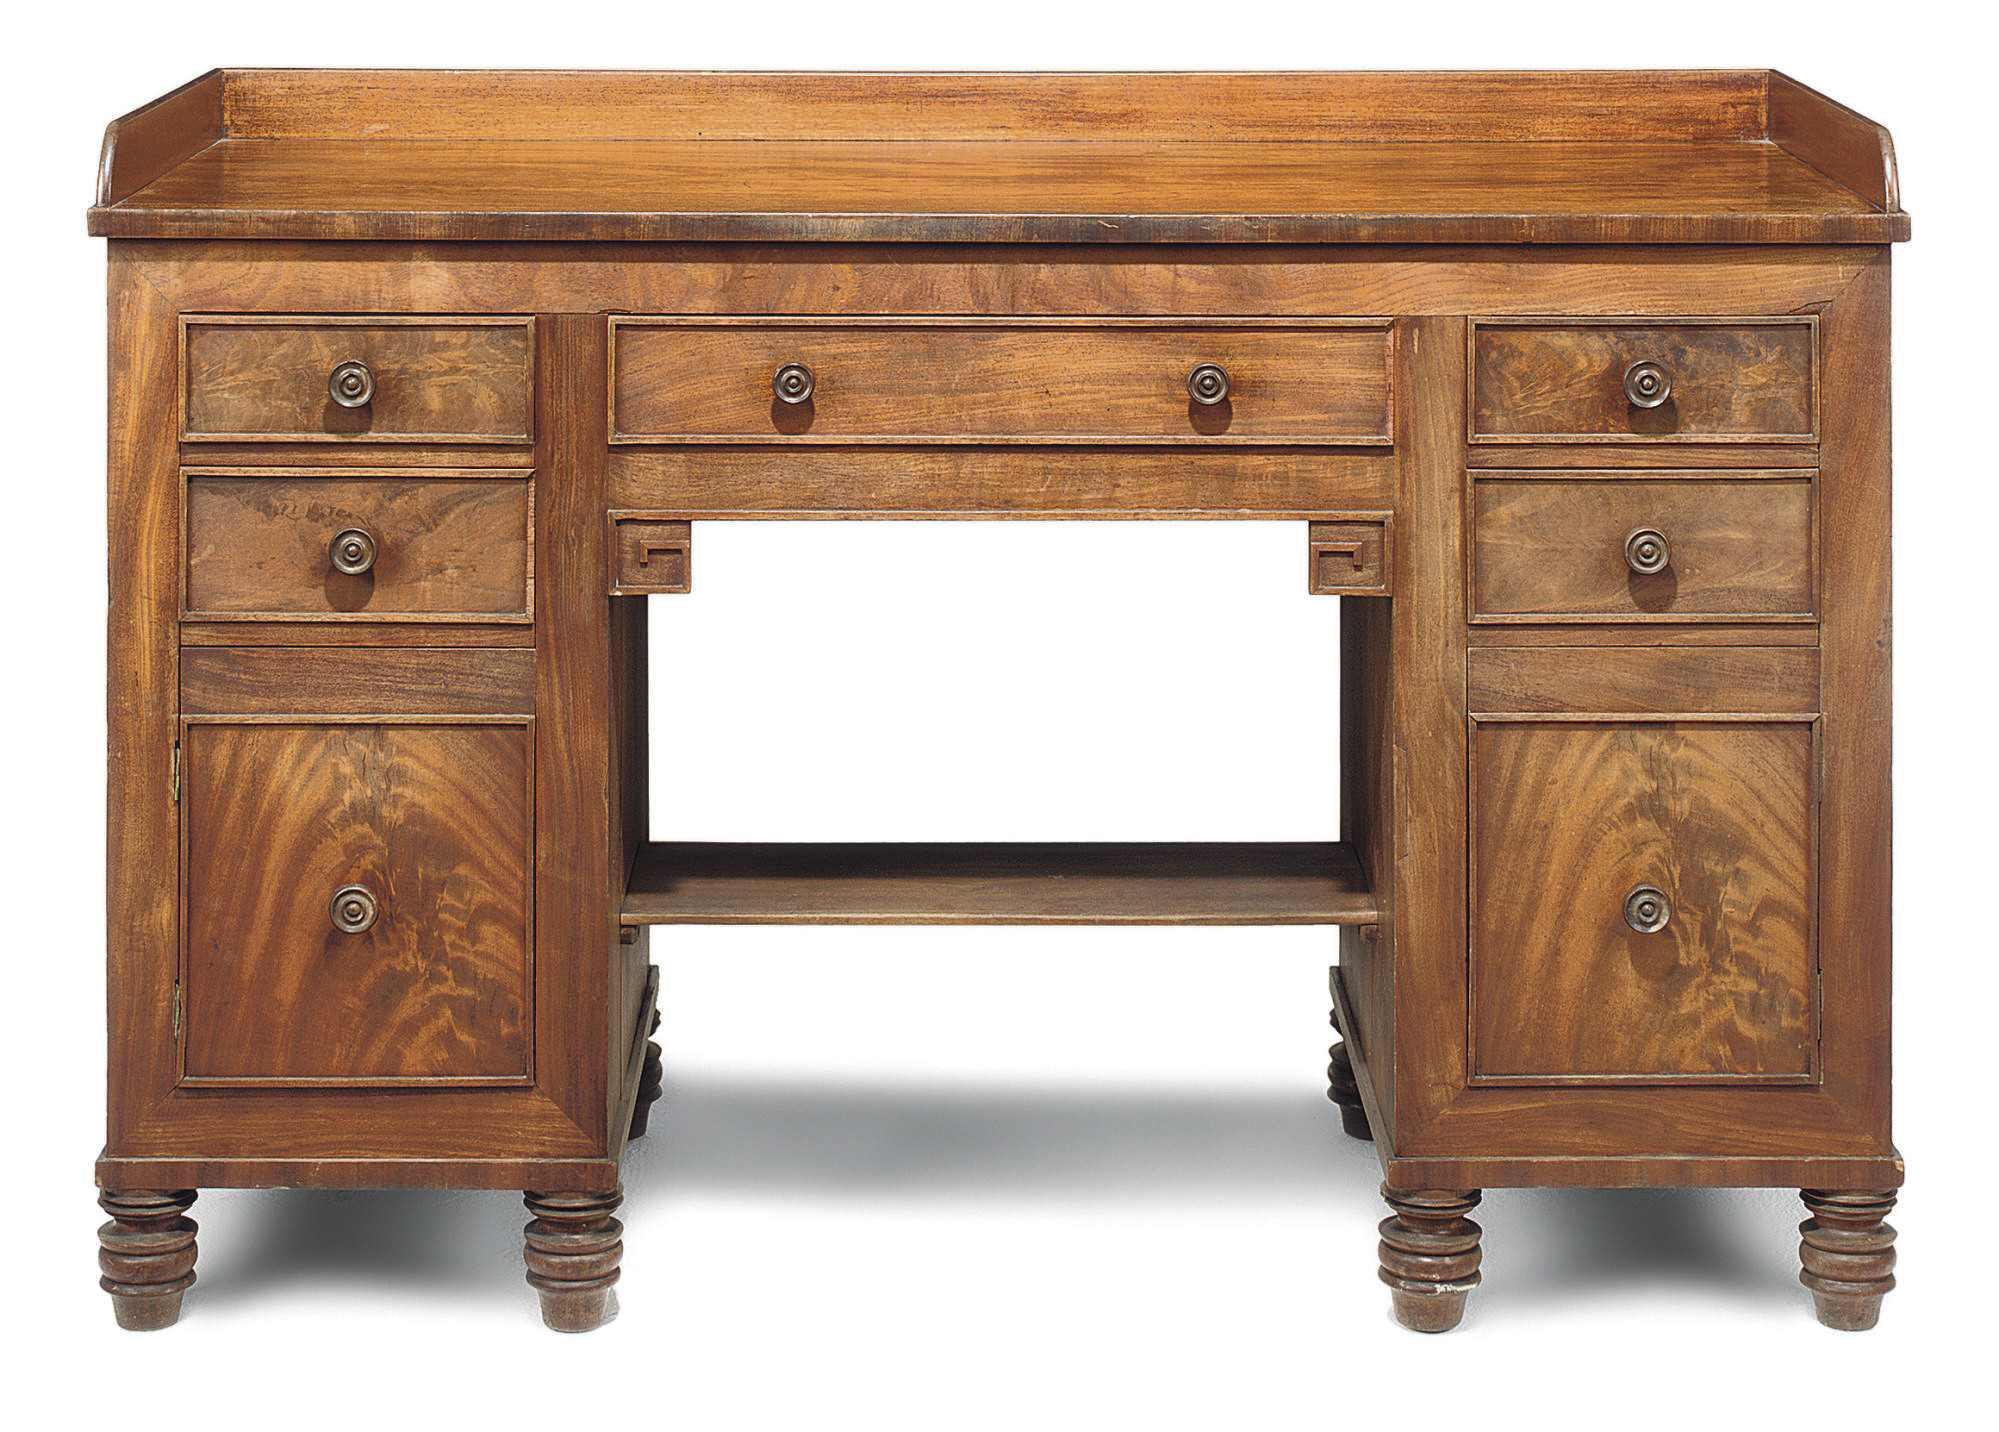 A SCOTTISH REGENCY MAHOGANY DRESSING TABLE